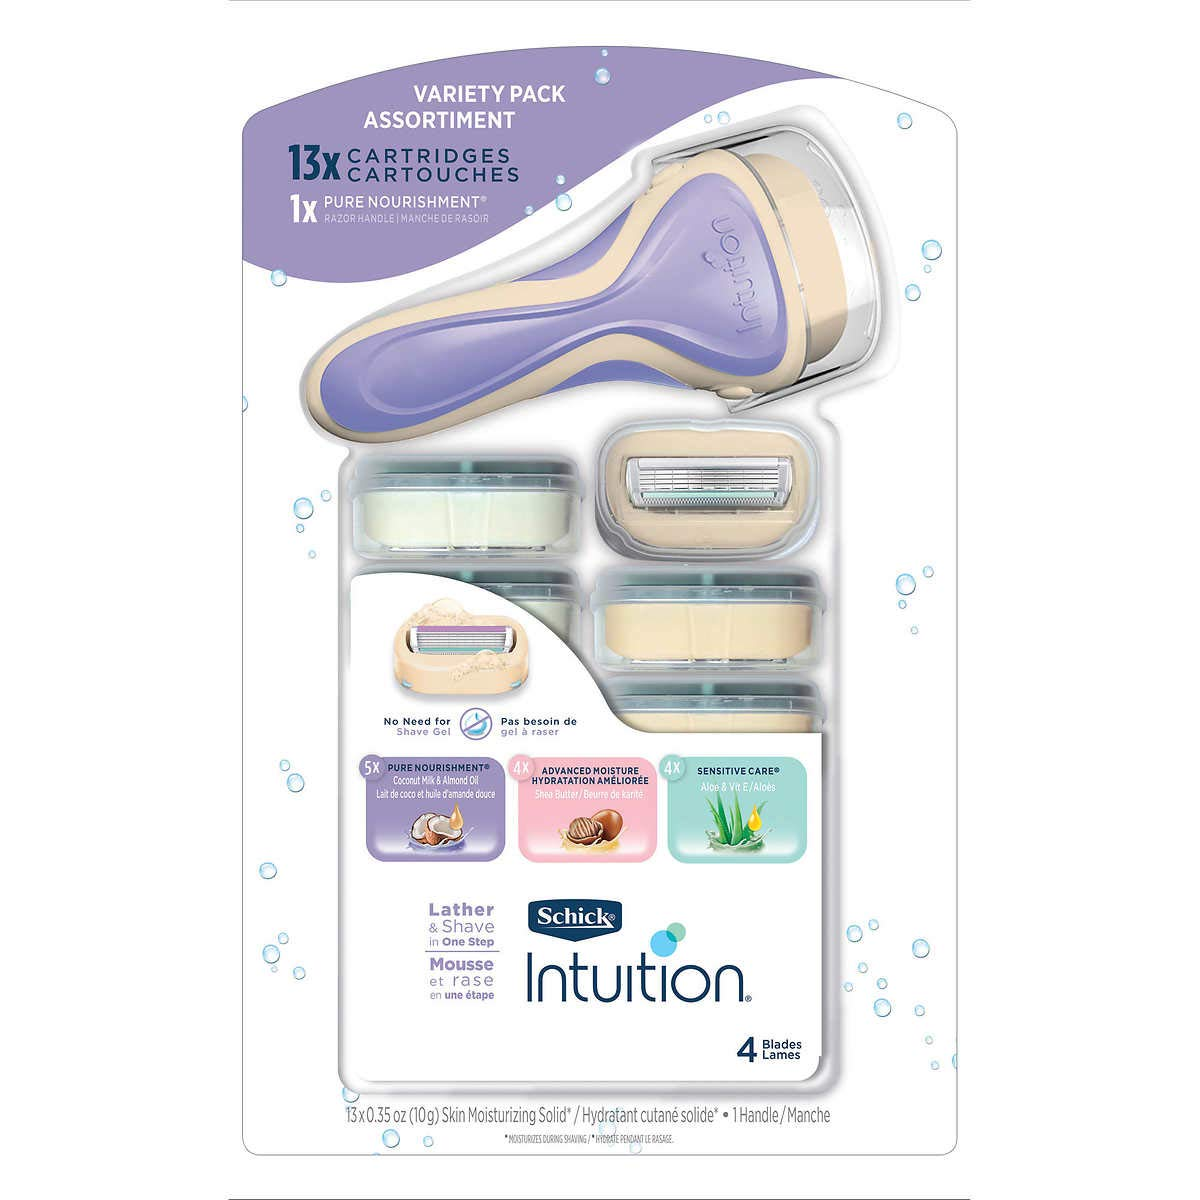 Schick Intuition Cartridges + Razor, 13 Count